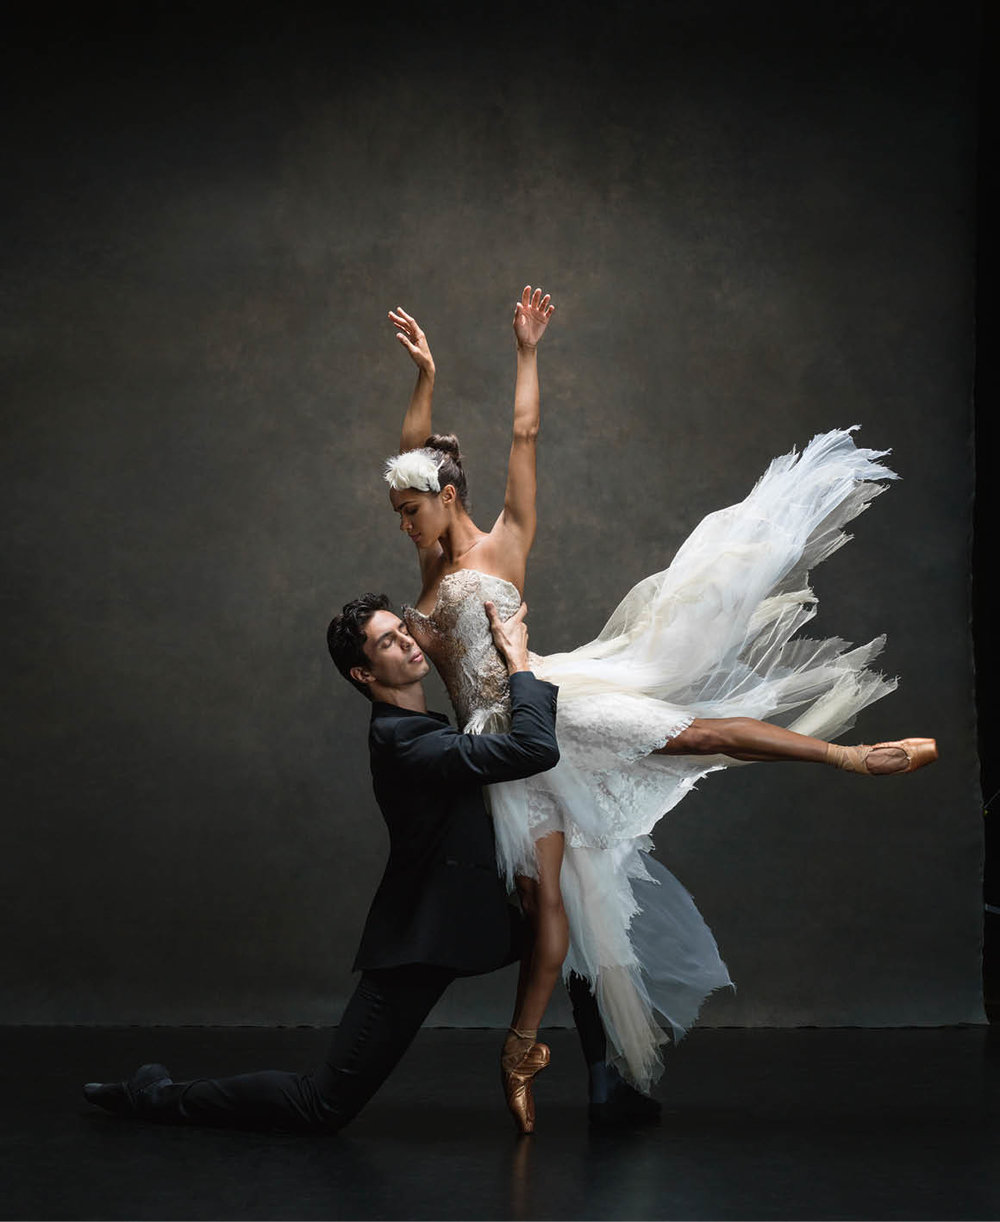 Misty Copeland and Alex Hammoudi © Ken Browar and Deborah Ory · www.nycdanceproject.com.